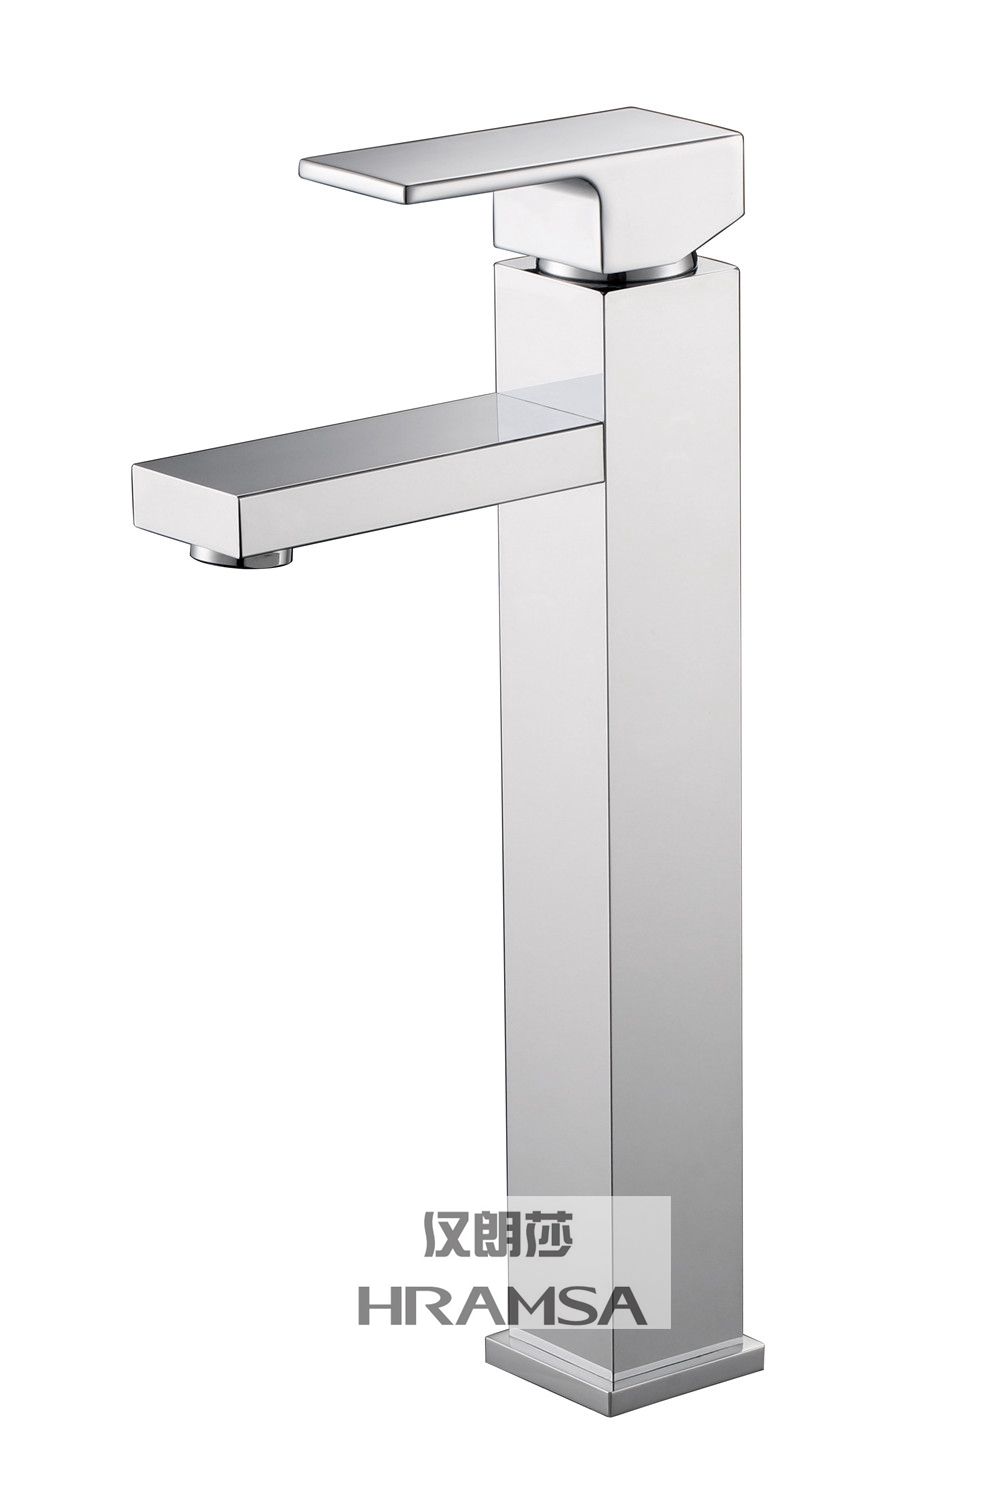 new single handle brass bathroom faucet,face wash basin faucet italian sanitary ware